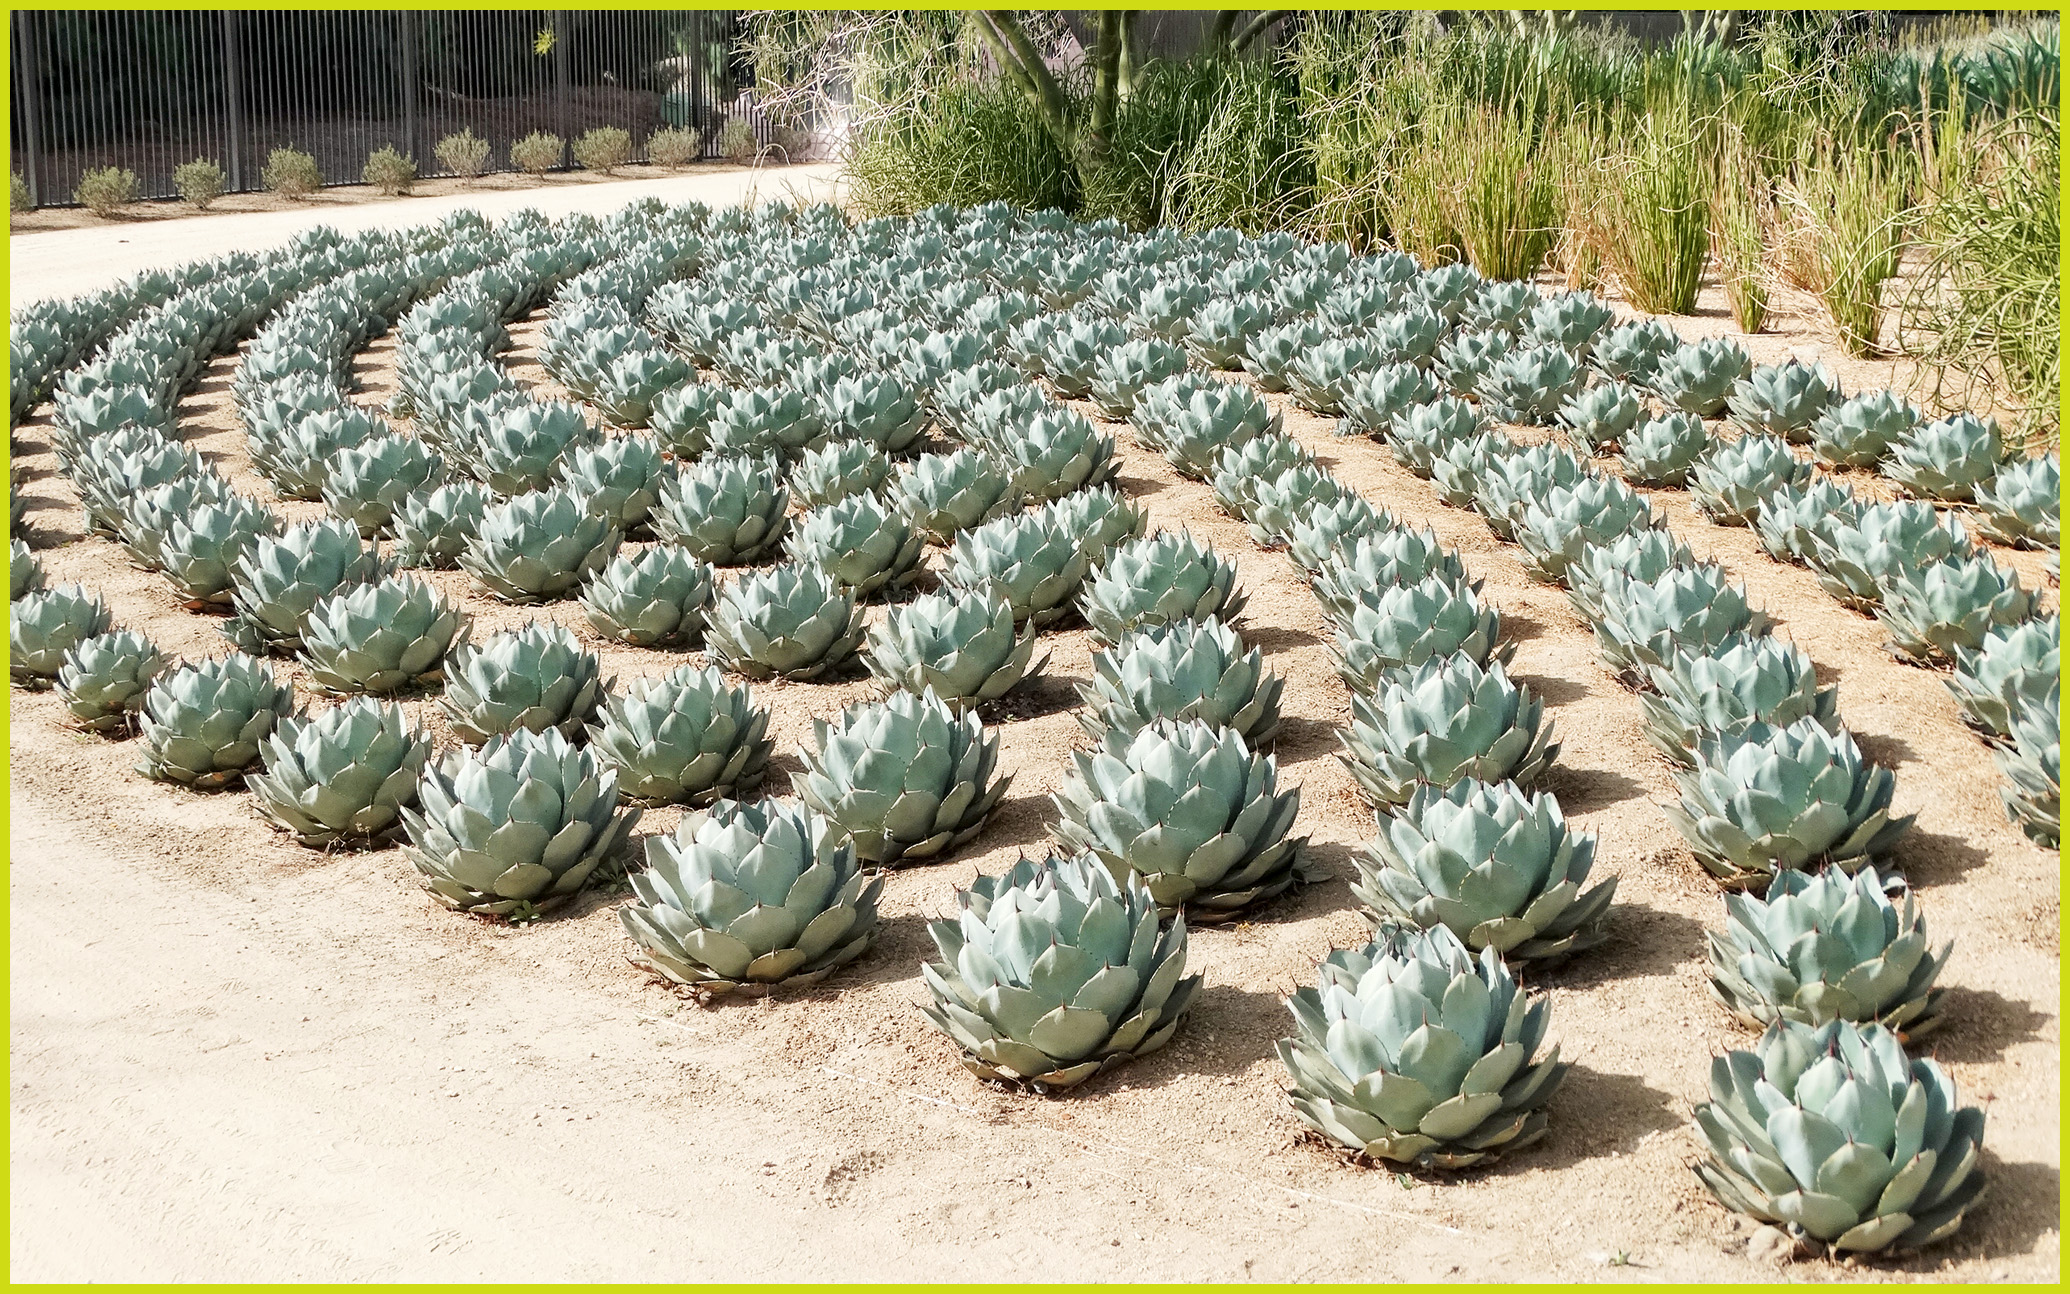 FileArtichoke Agave, Sunnylands 2,22,14 (12935575573)